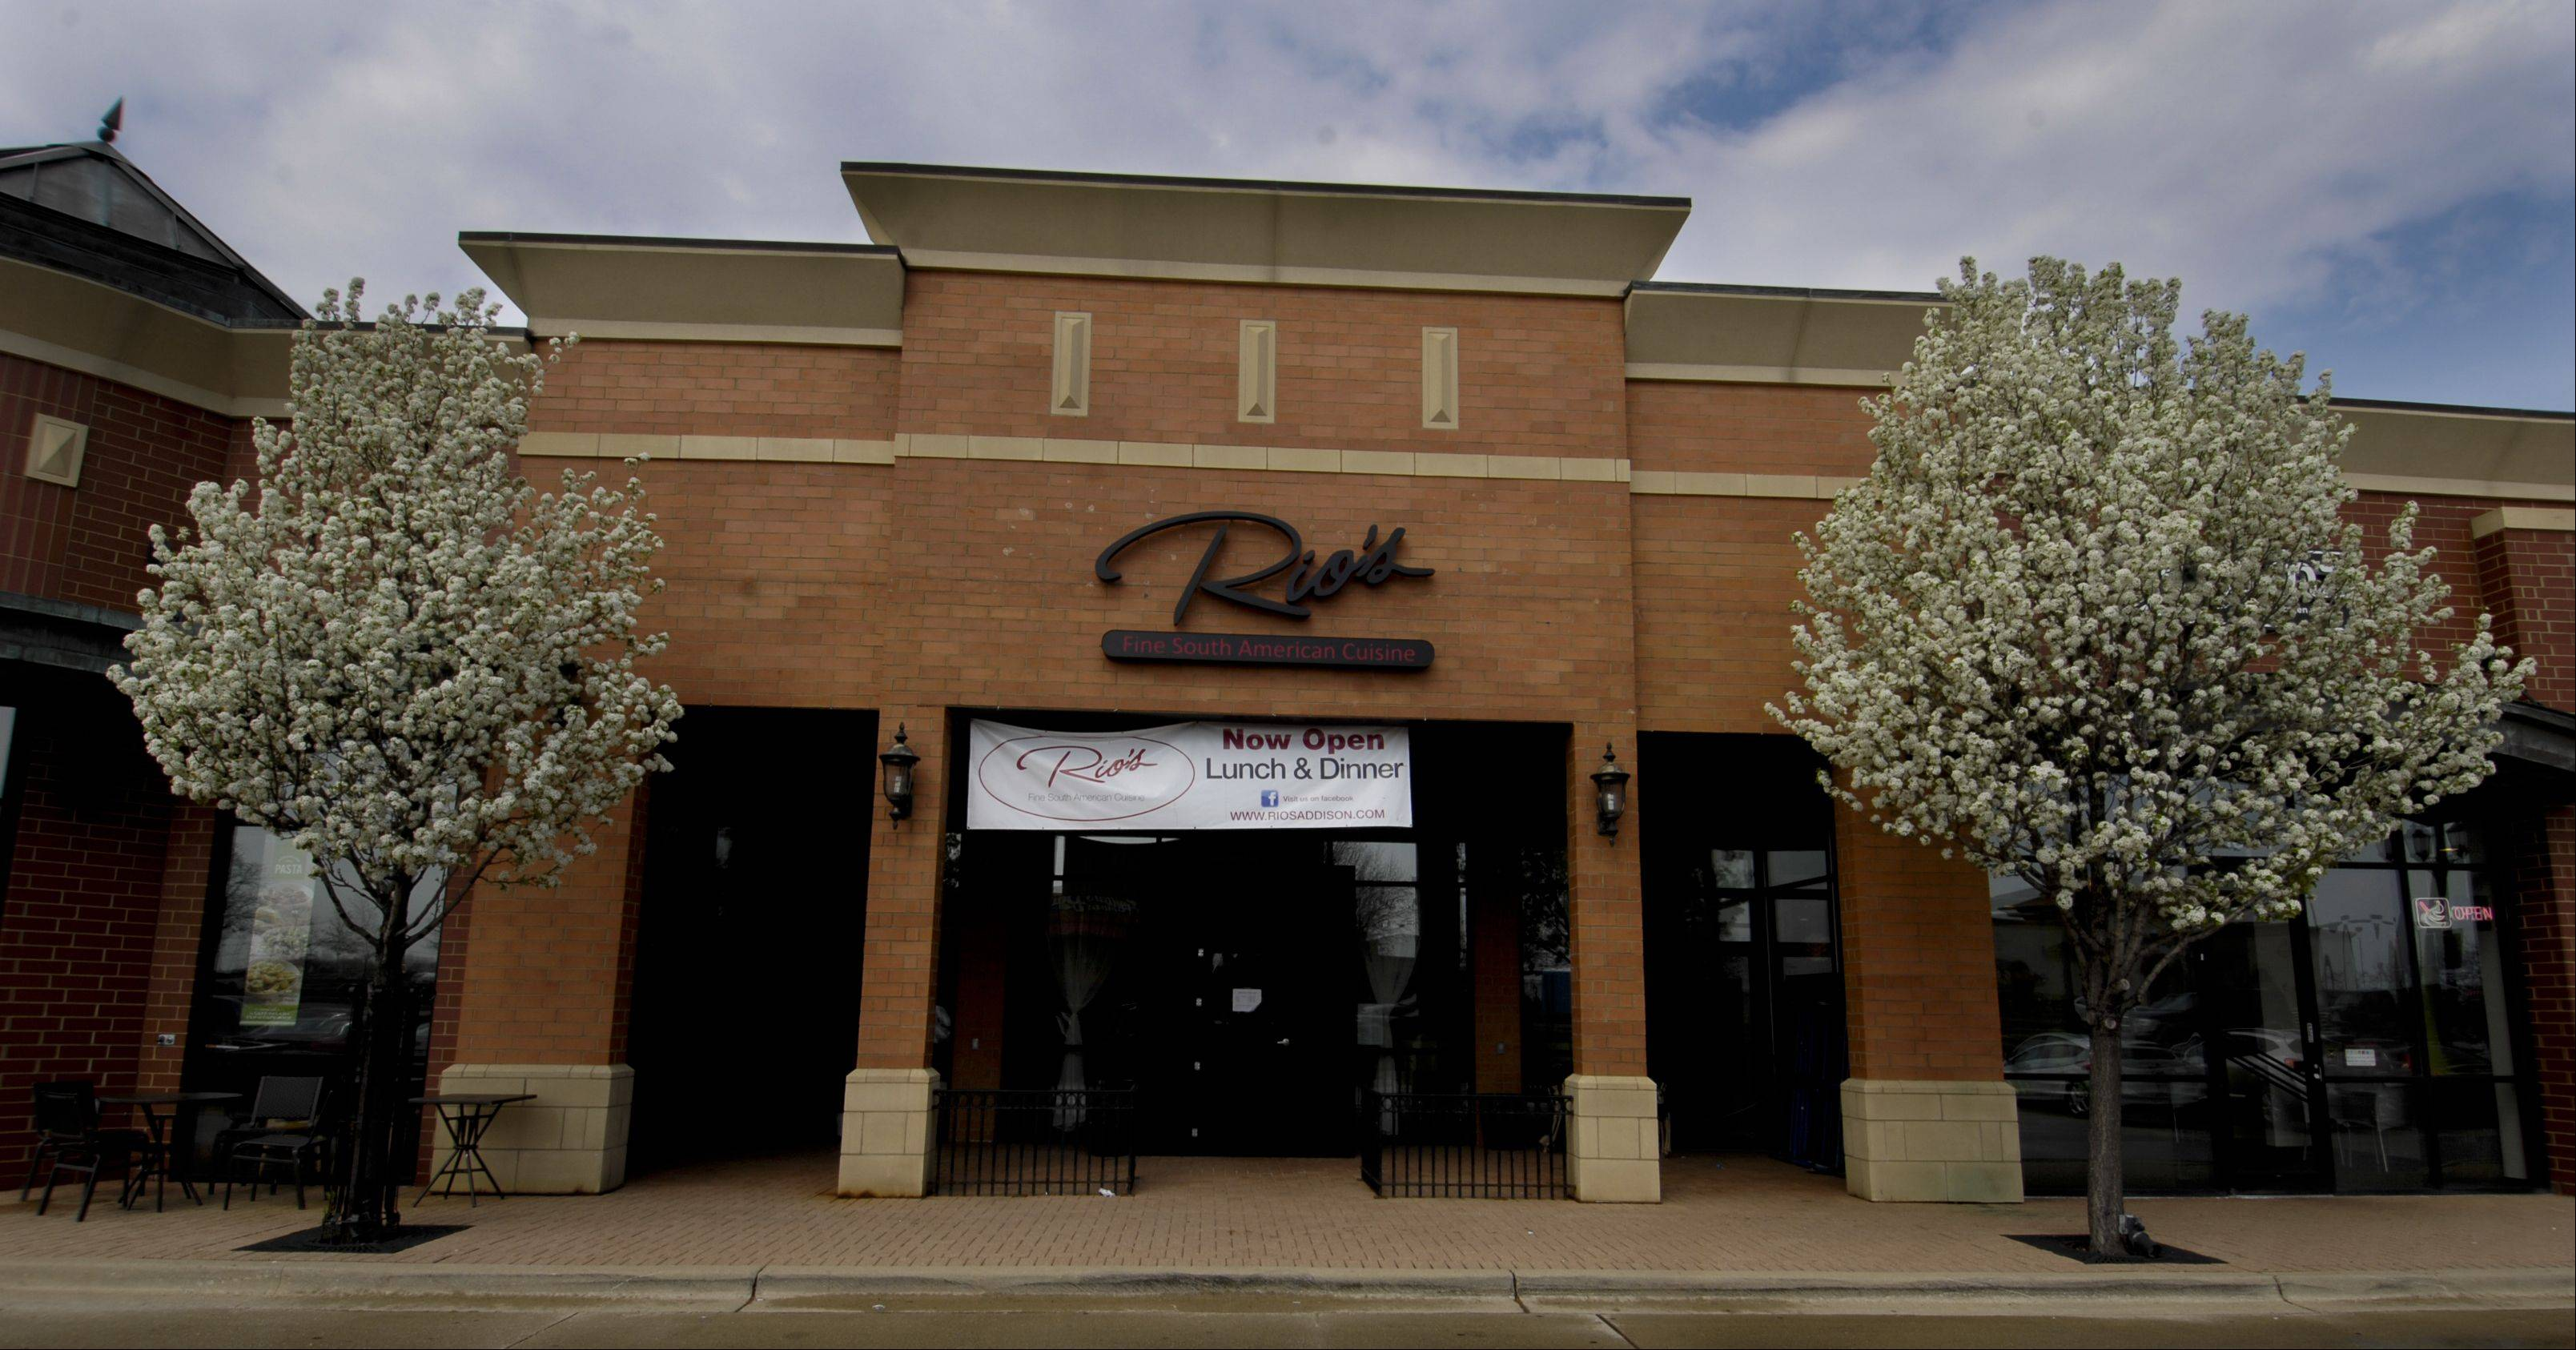 Rio's serves South American fare in a new strip mall in Addison.